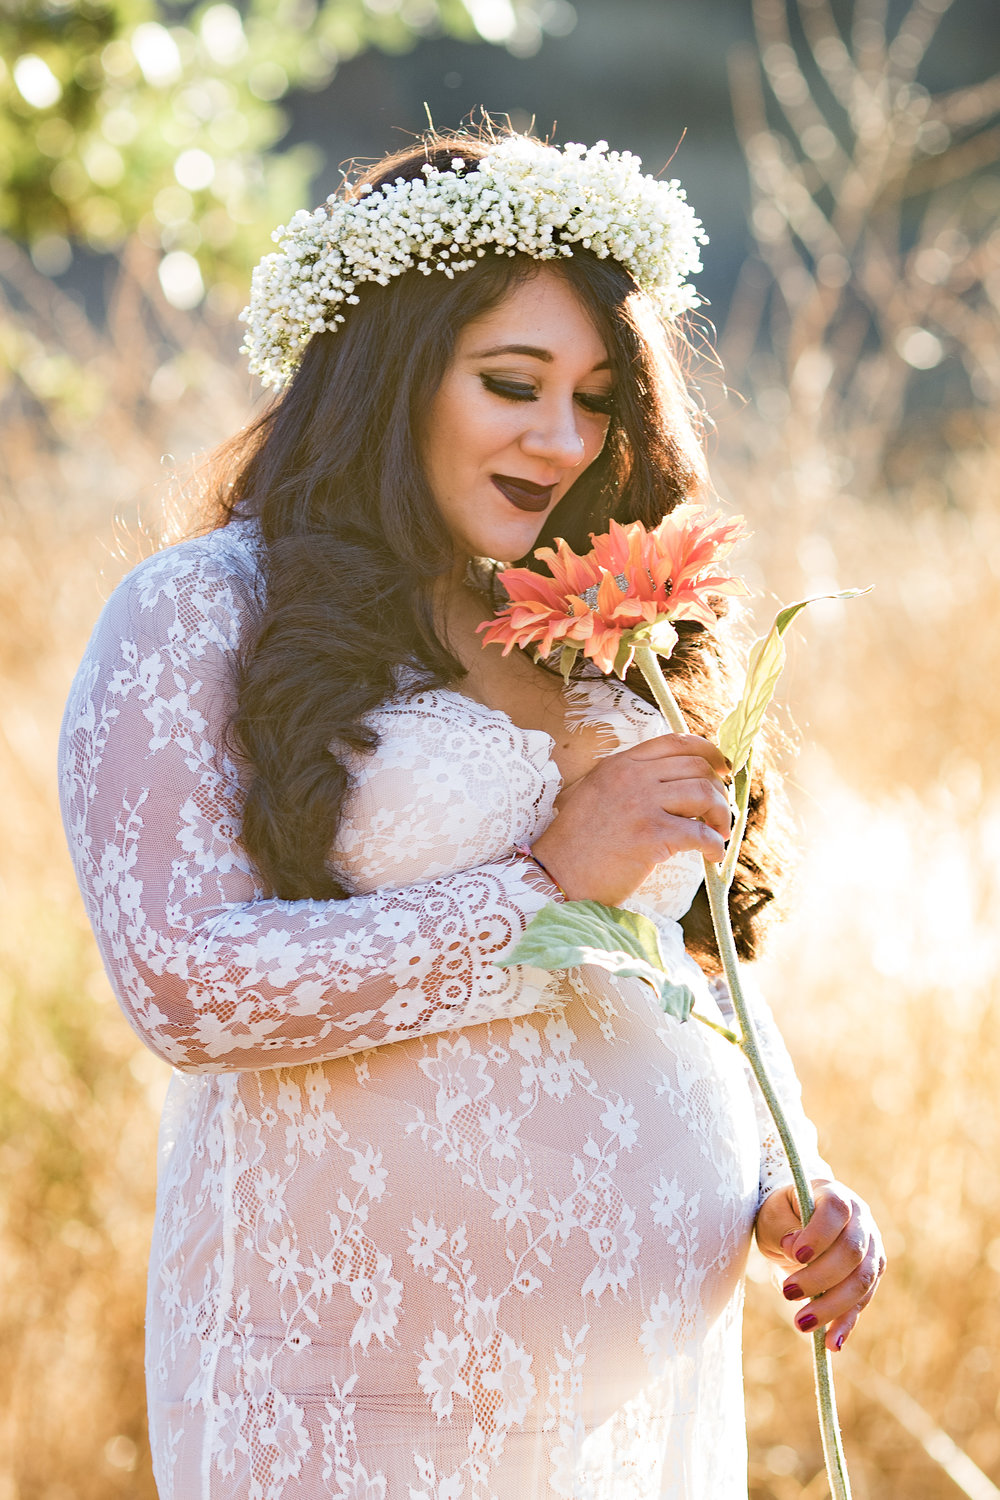 Lace Maxi Maternity Dress - An Outdoor Sunset Maternity Session - Raelyn Elizabeth Photography